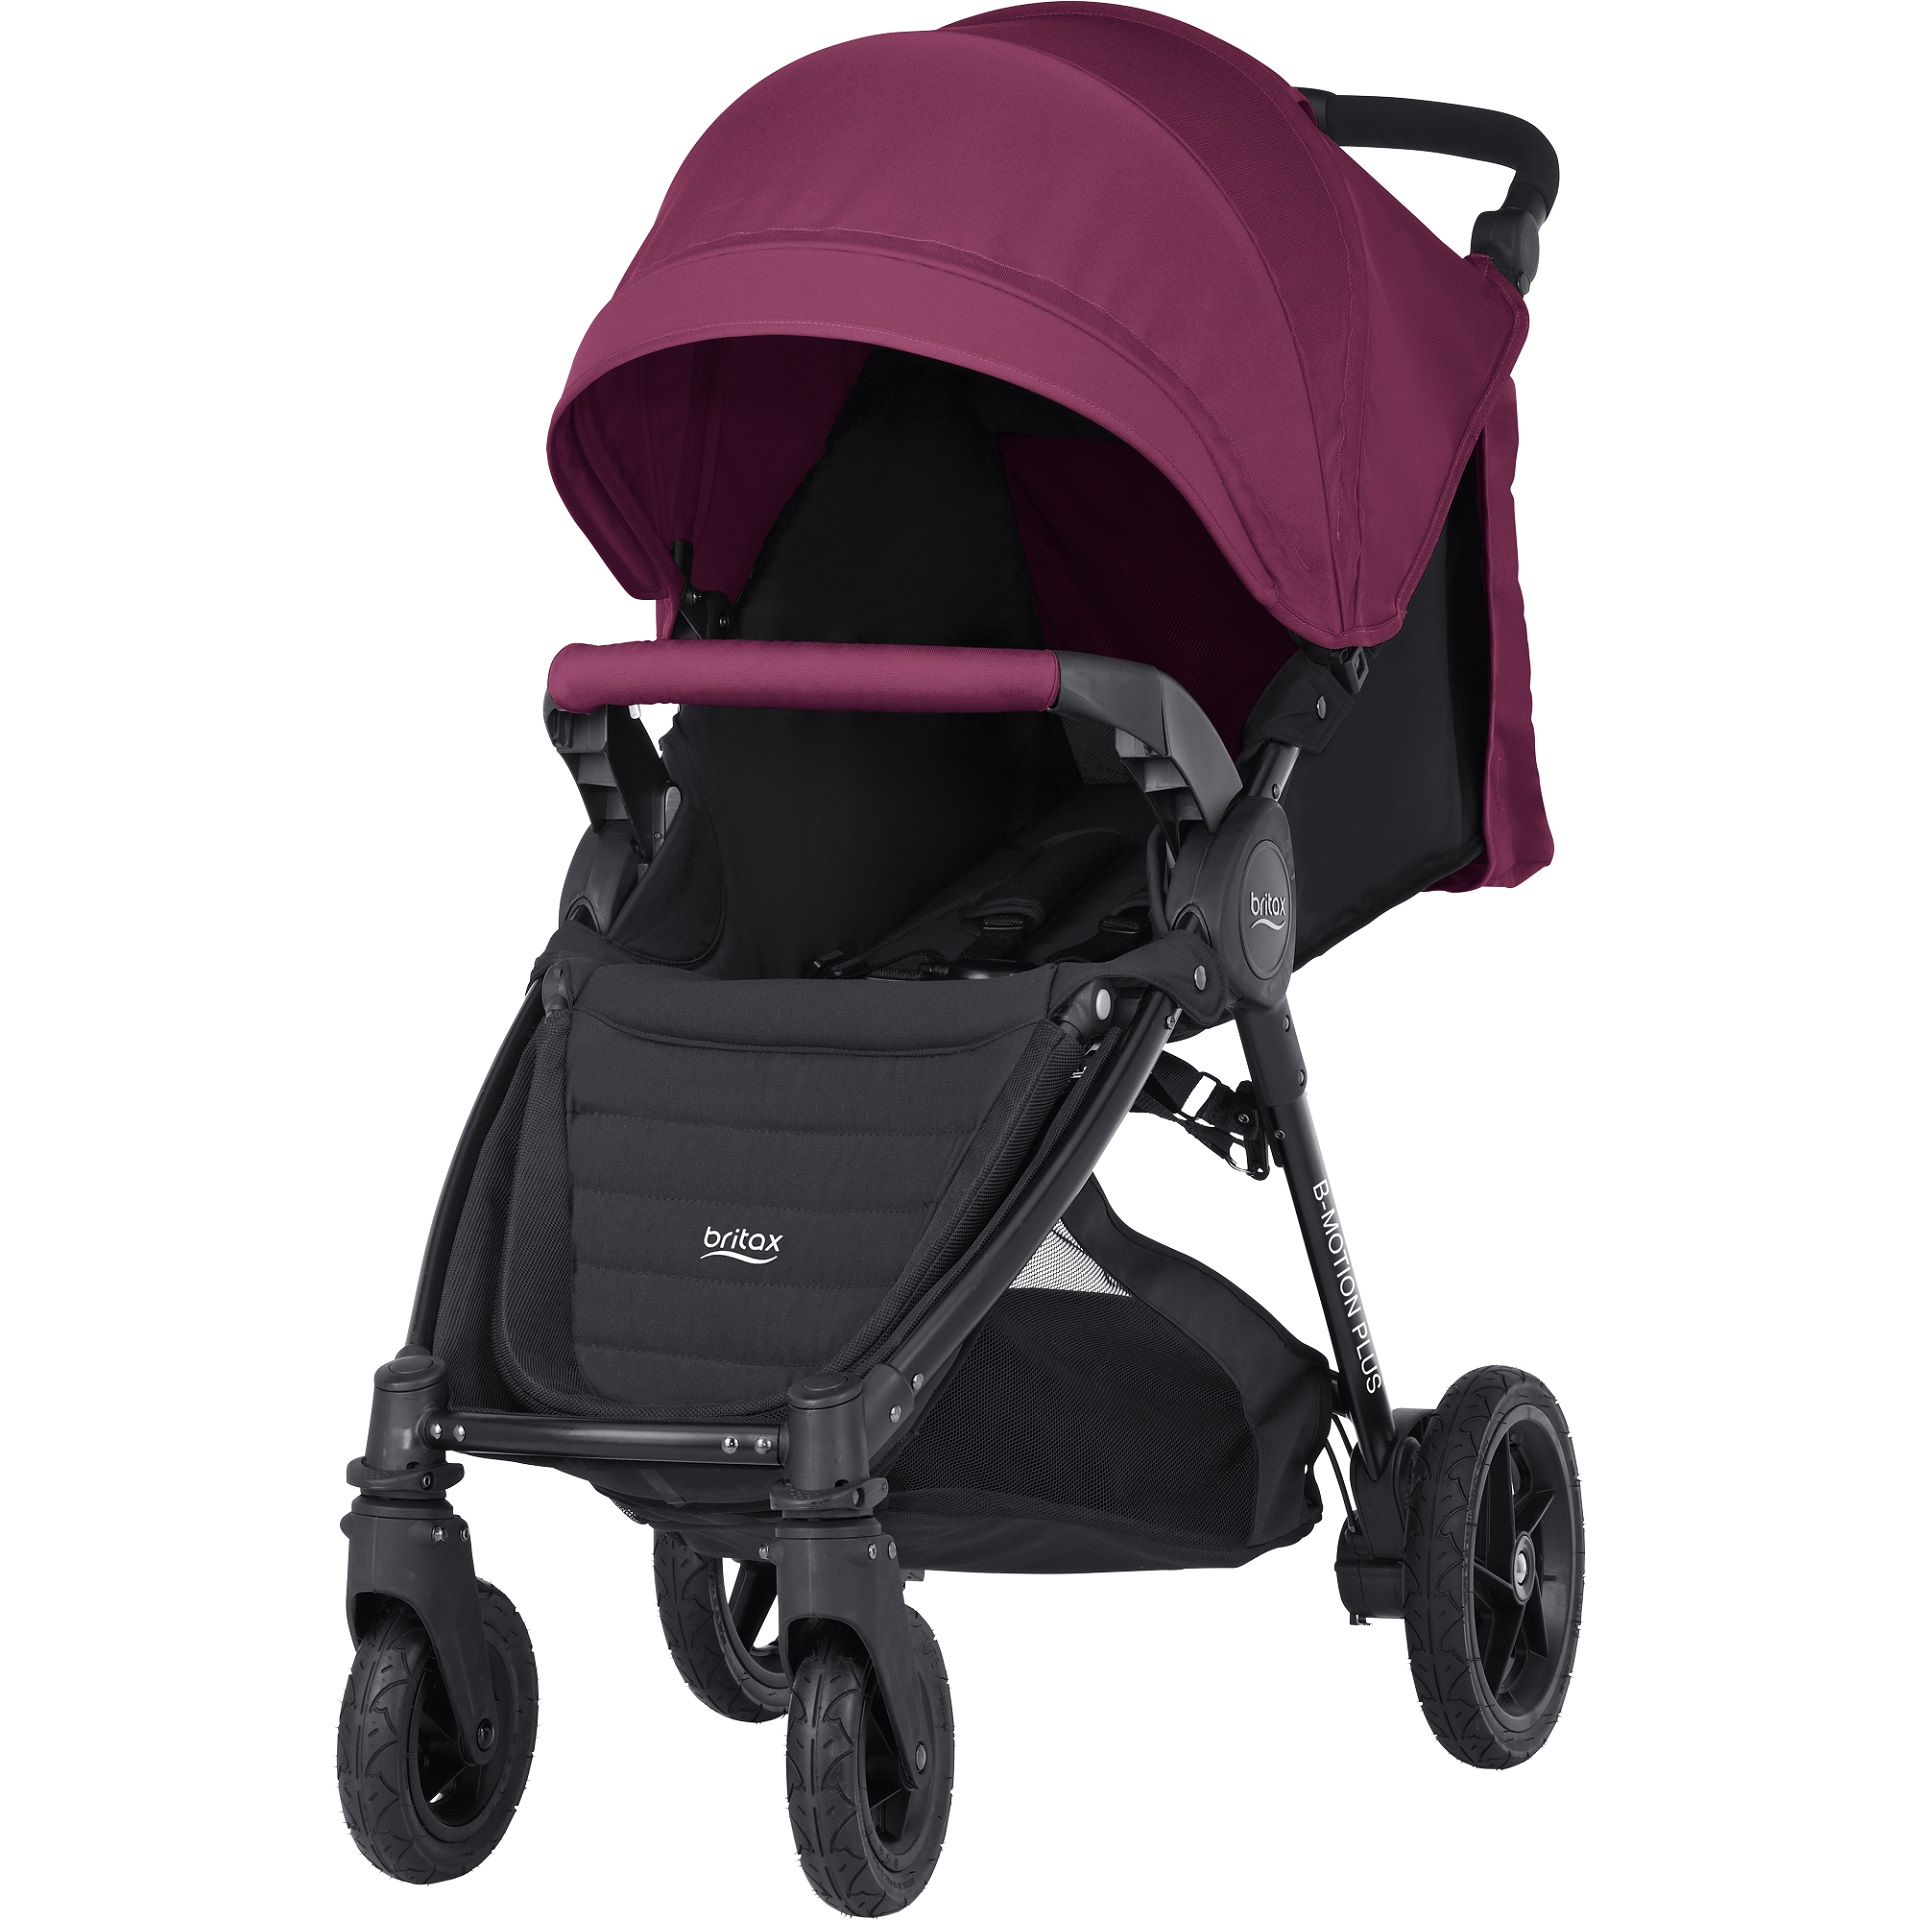 Britax B-Motion 4 Plus incl. Canopy Pack Wine Red 2018 - large image ...  sc 1 st  Baby products online store - worldwide shipping & Britax B-Motion 4 Plus incl. Canopy Pack - Buy at kidsroom   Strollers